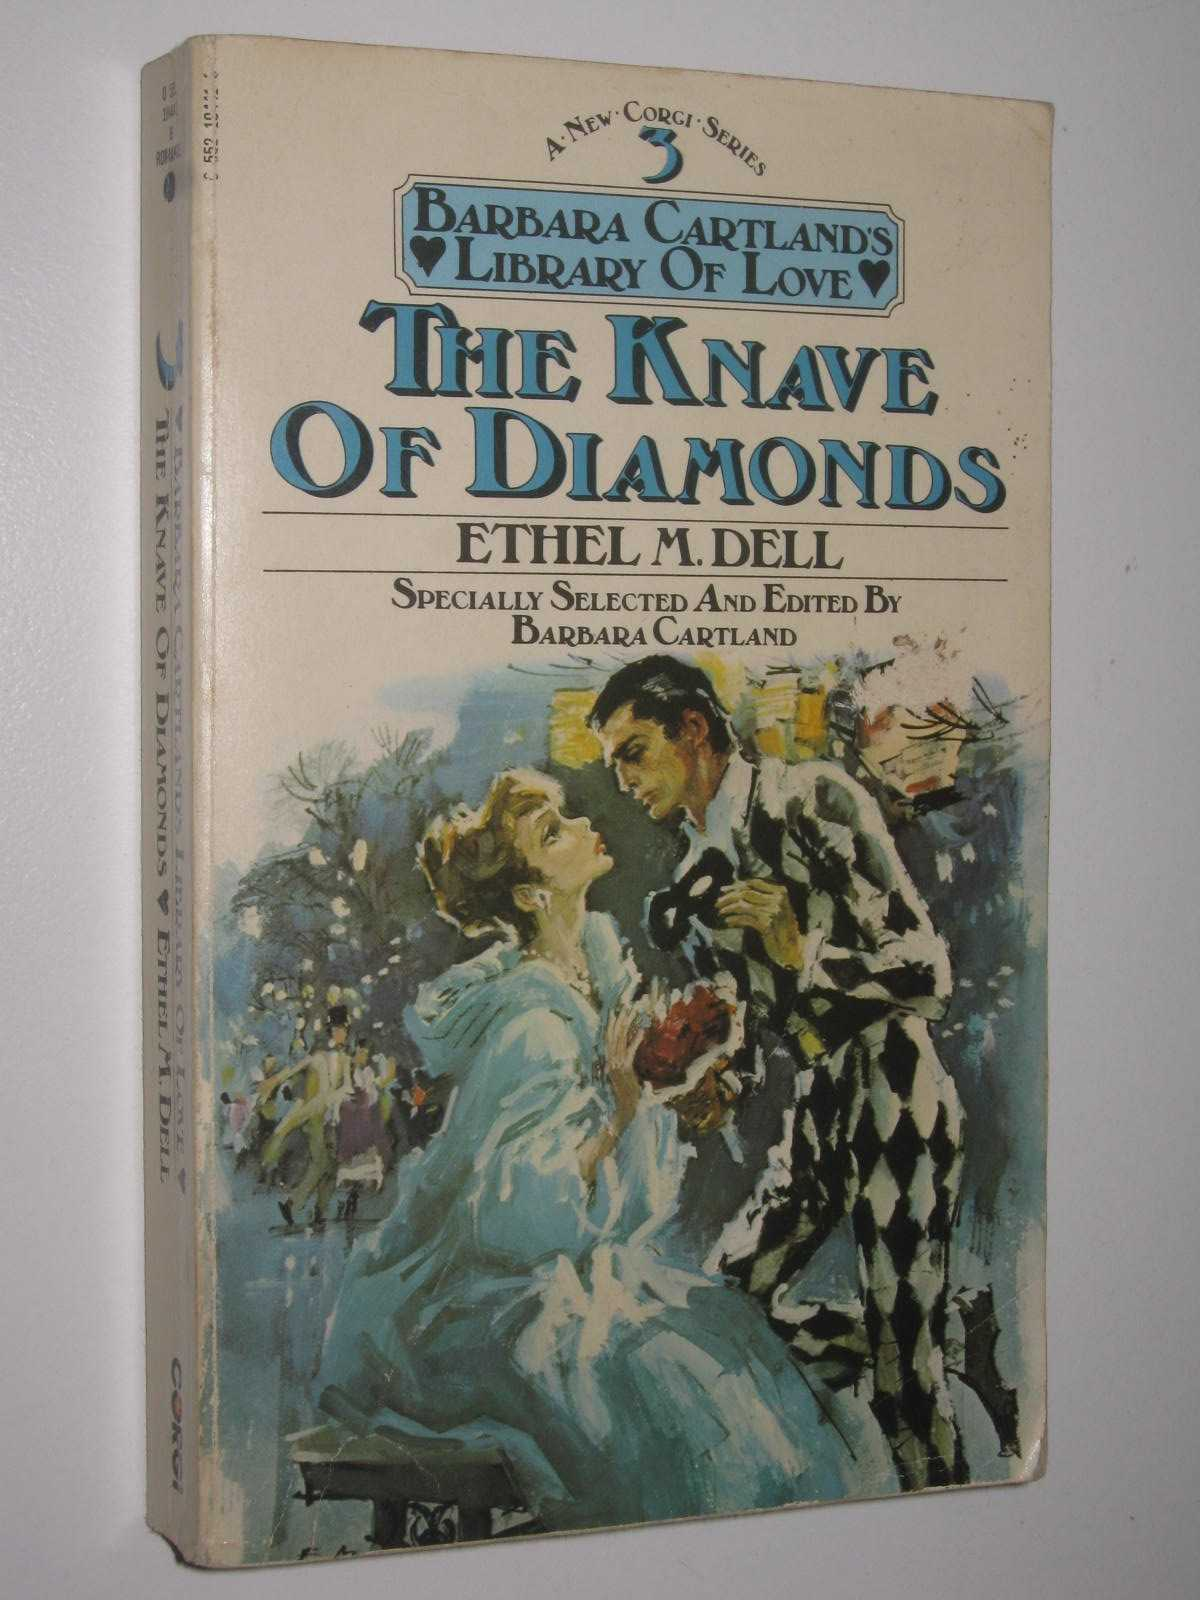 Image for The Knave of Diamonds - Barbara Cartland's Library of Love Series